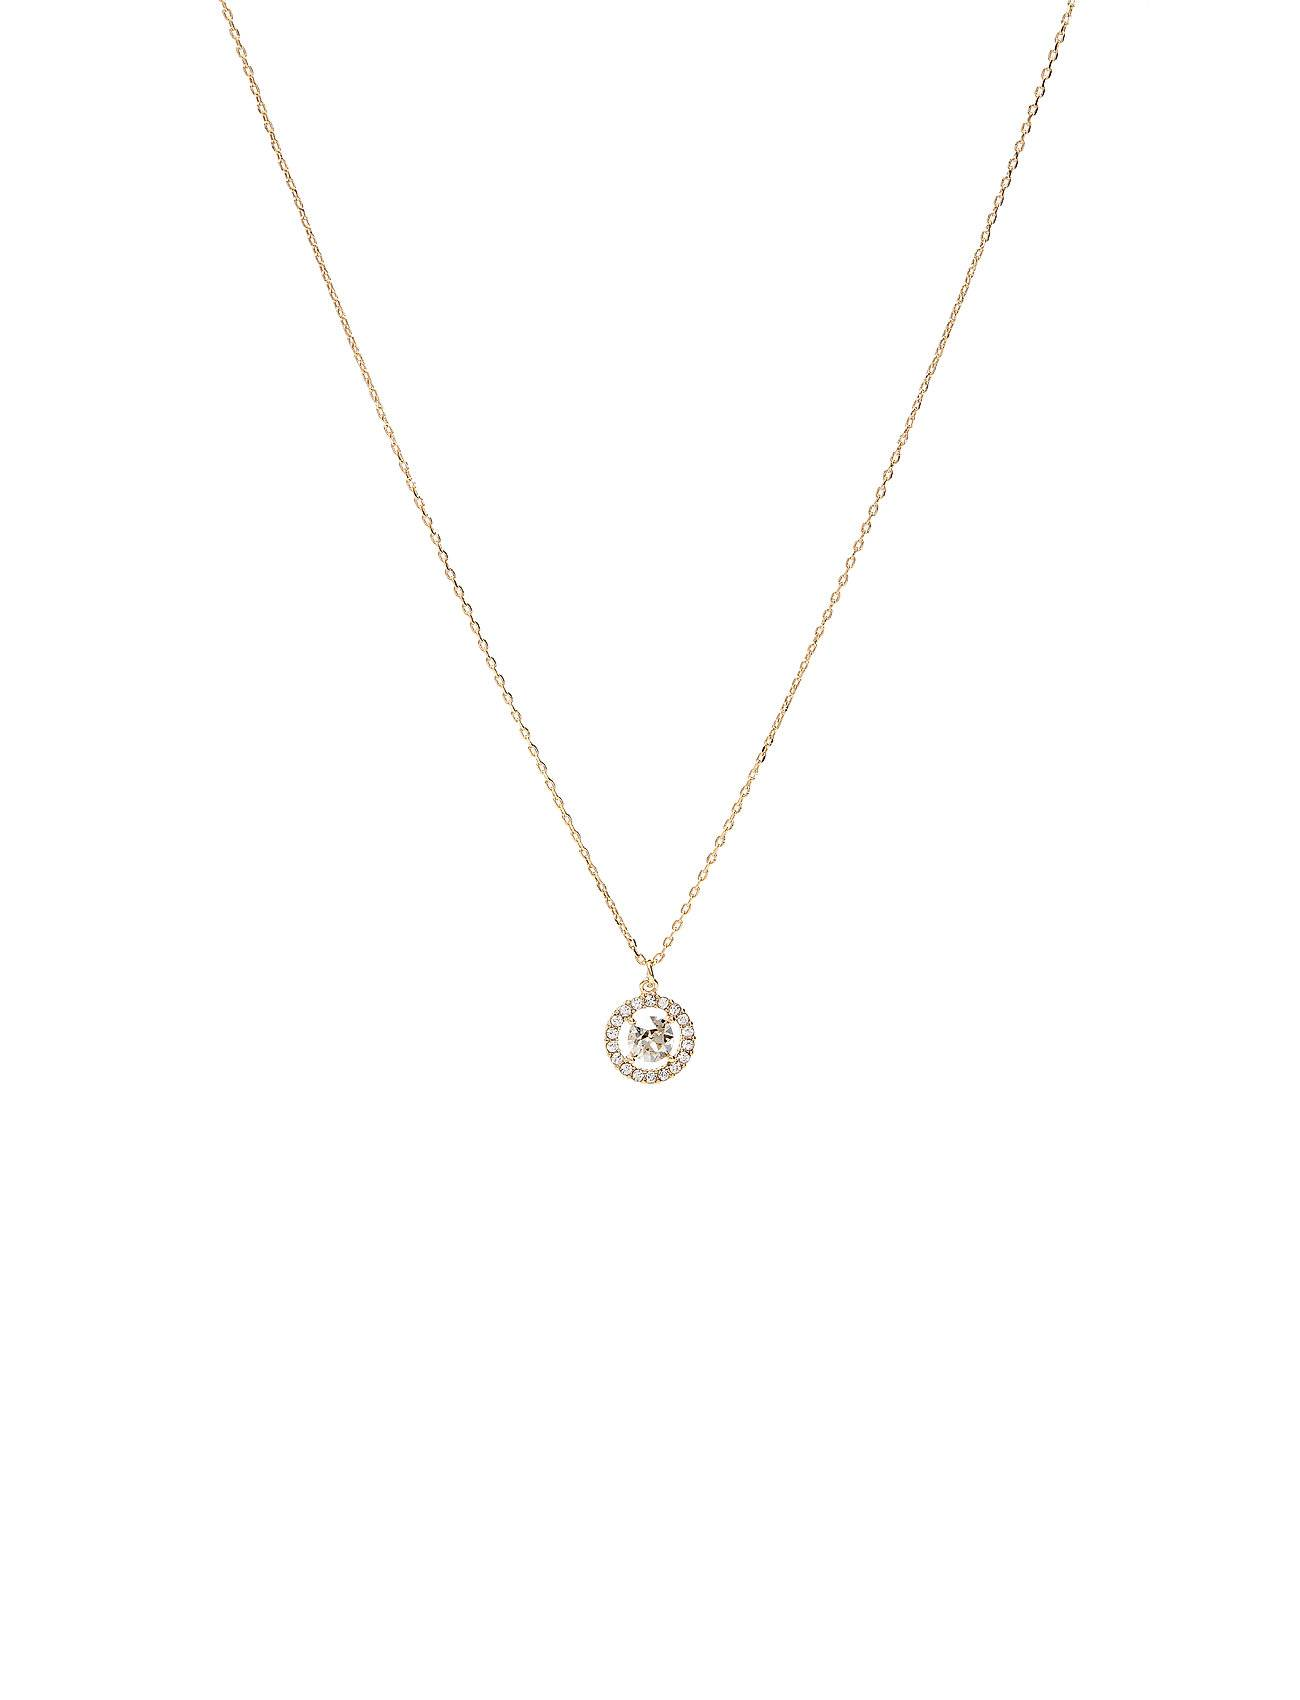 LILY AND ROSE Miss Miranda Necklace - Silvershade Accessories Jewellery Necklaces Dainty Necklaces Hopea LILY AND ROSE